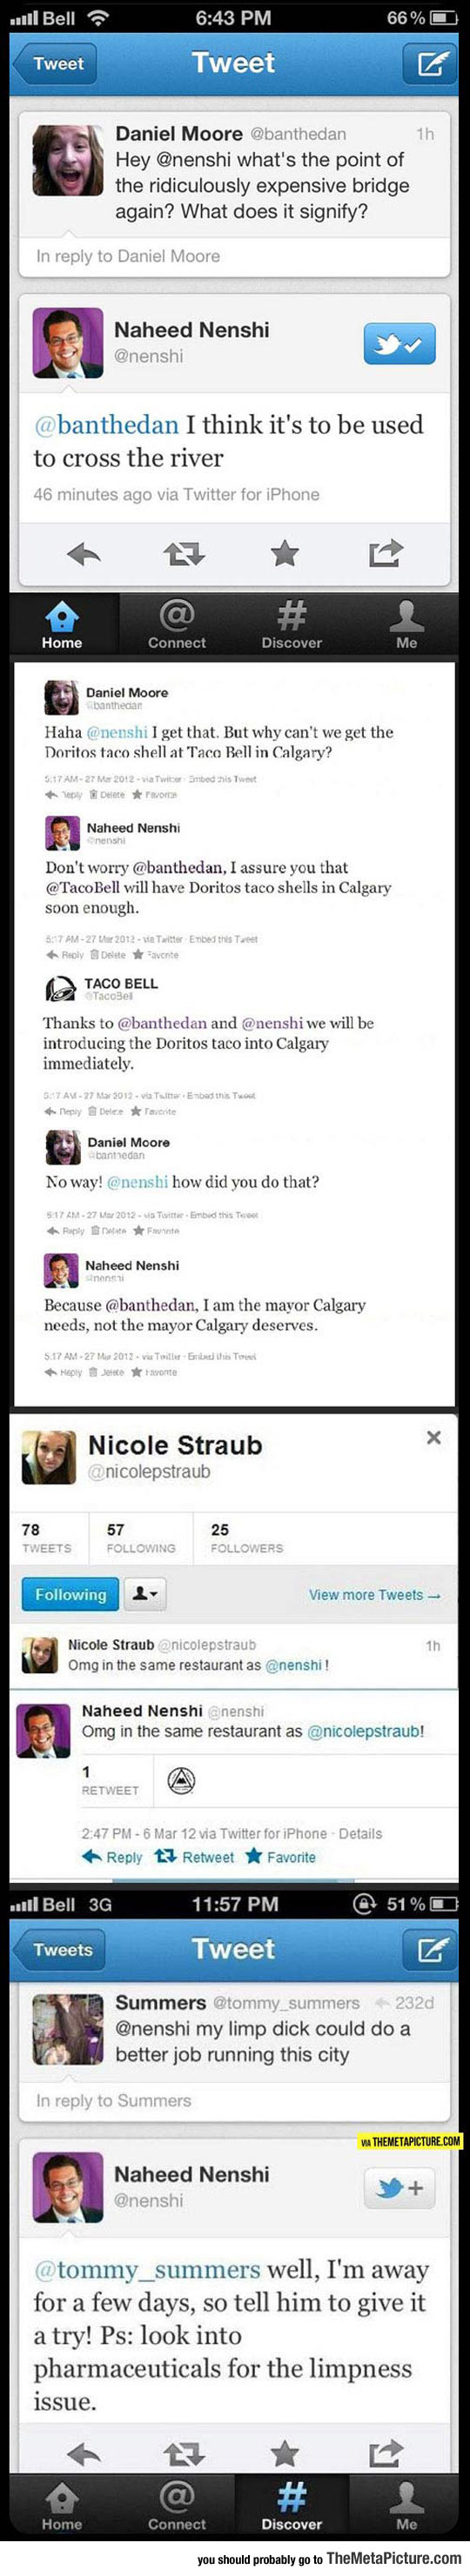 cool-Alberta-Mayor-Naheed-Nenshi-Twitter